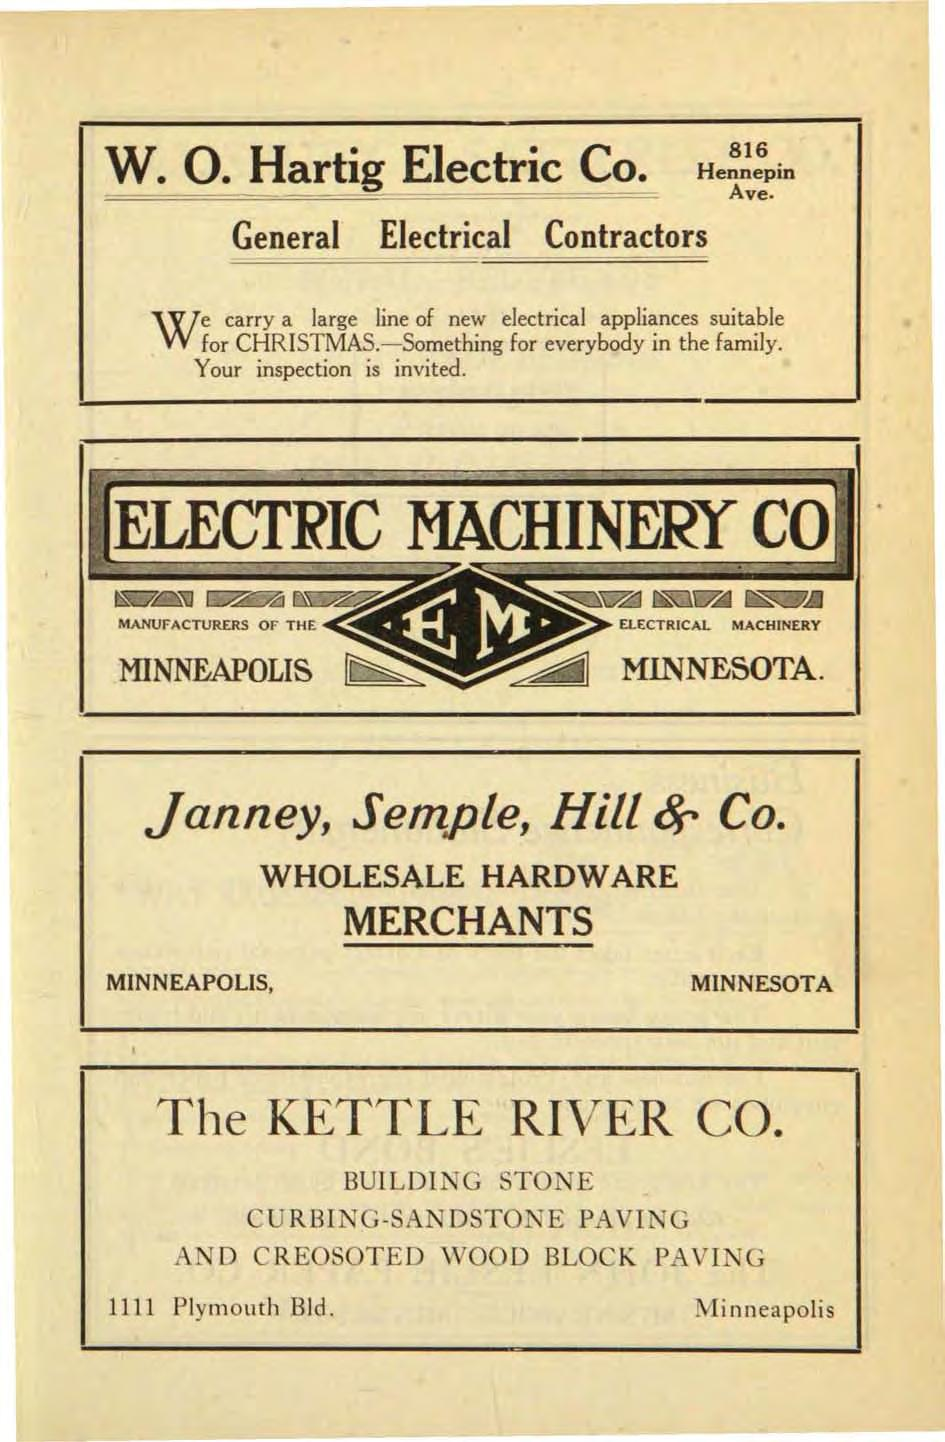 w. O. Hartig Electric Co. General Electrical Contractors 816 Hennepin Ave. e carry a large line of new electrical appliances suitable Wfor CHRISTMAS.-Something for everybody in the family.